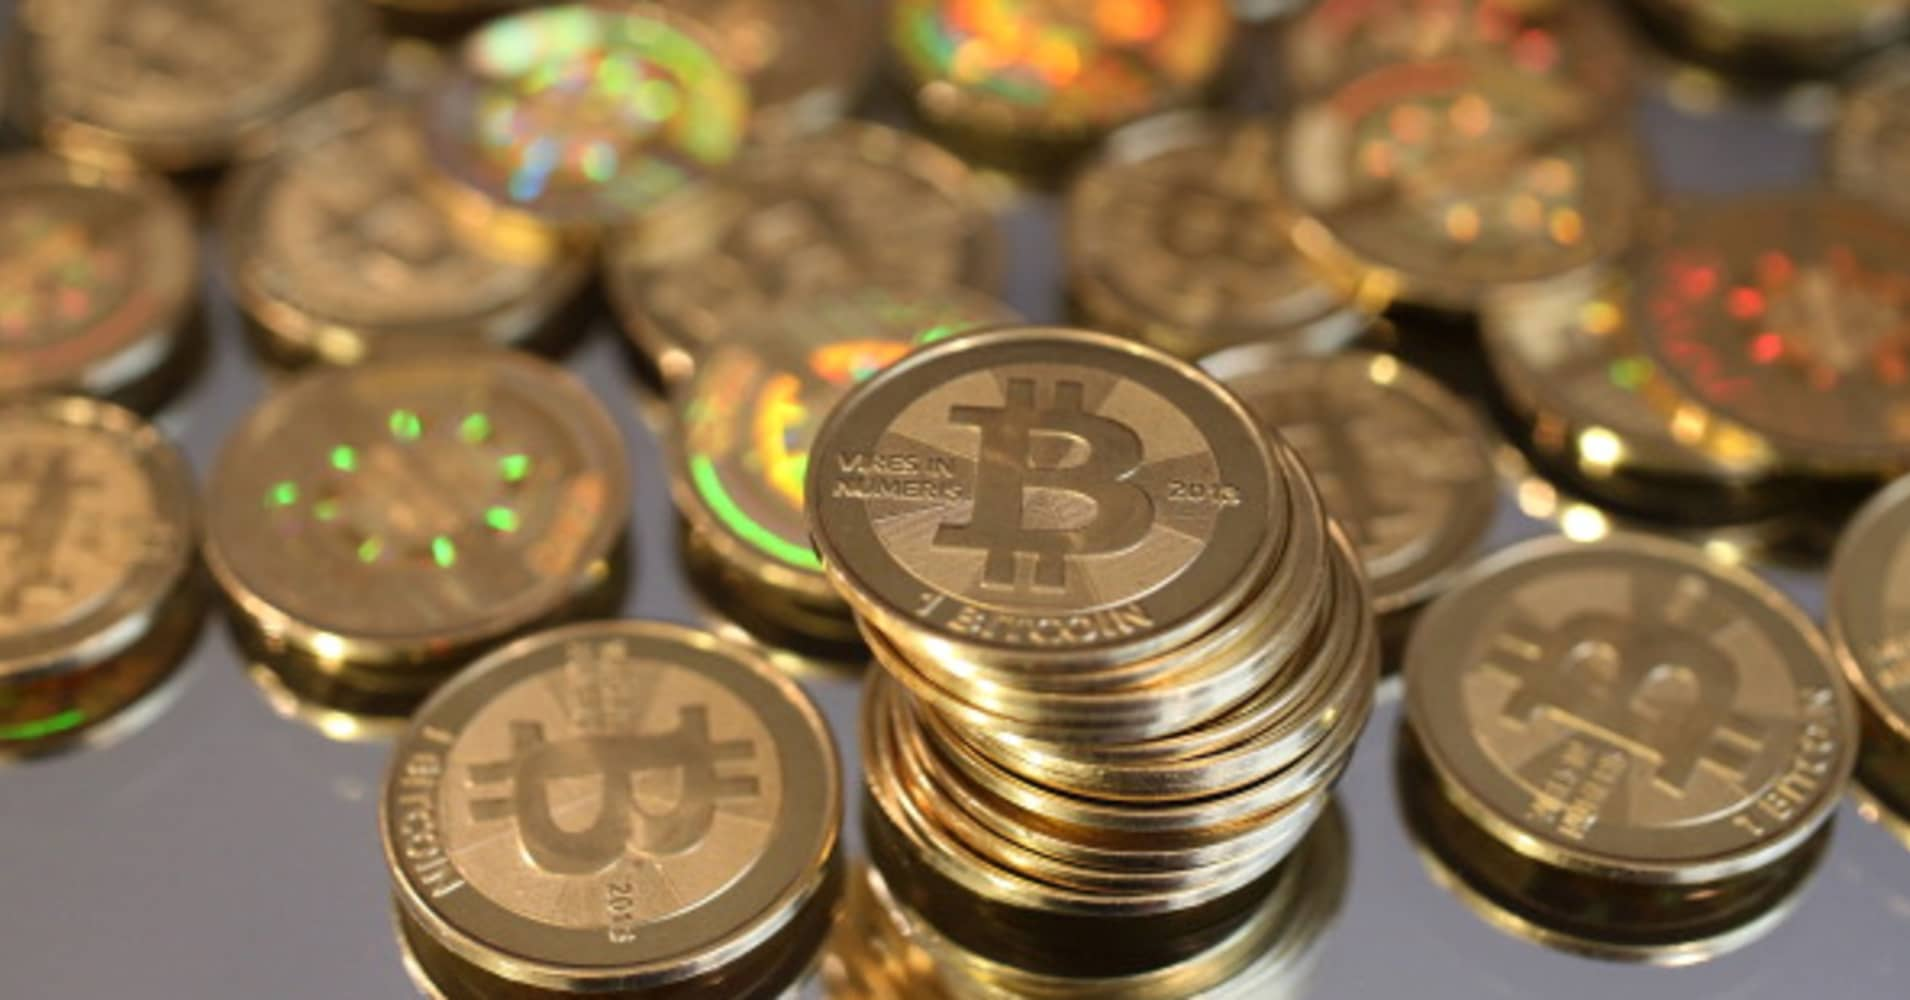 As bitcoin soars and ICOs spread, advisors urge caution